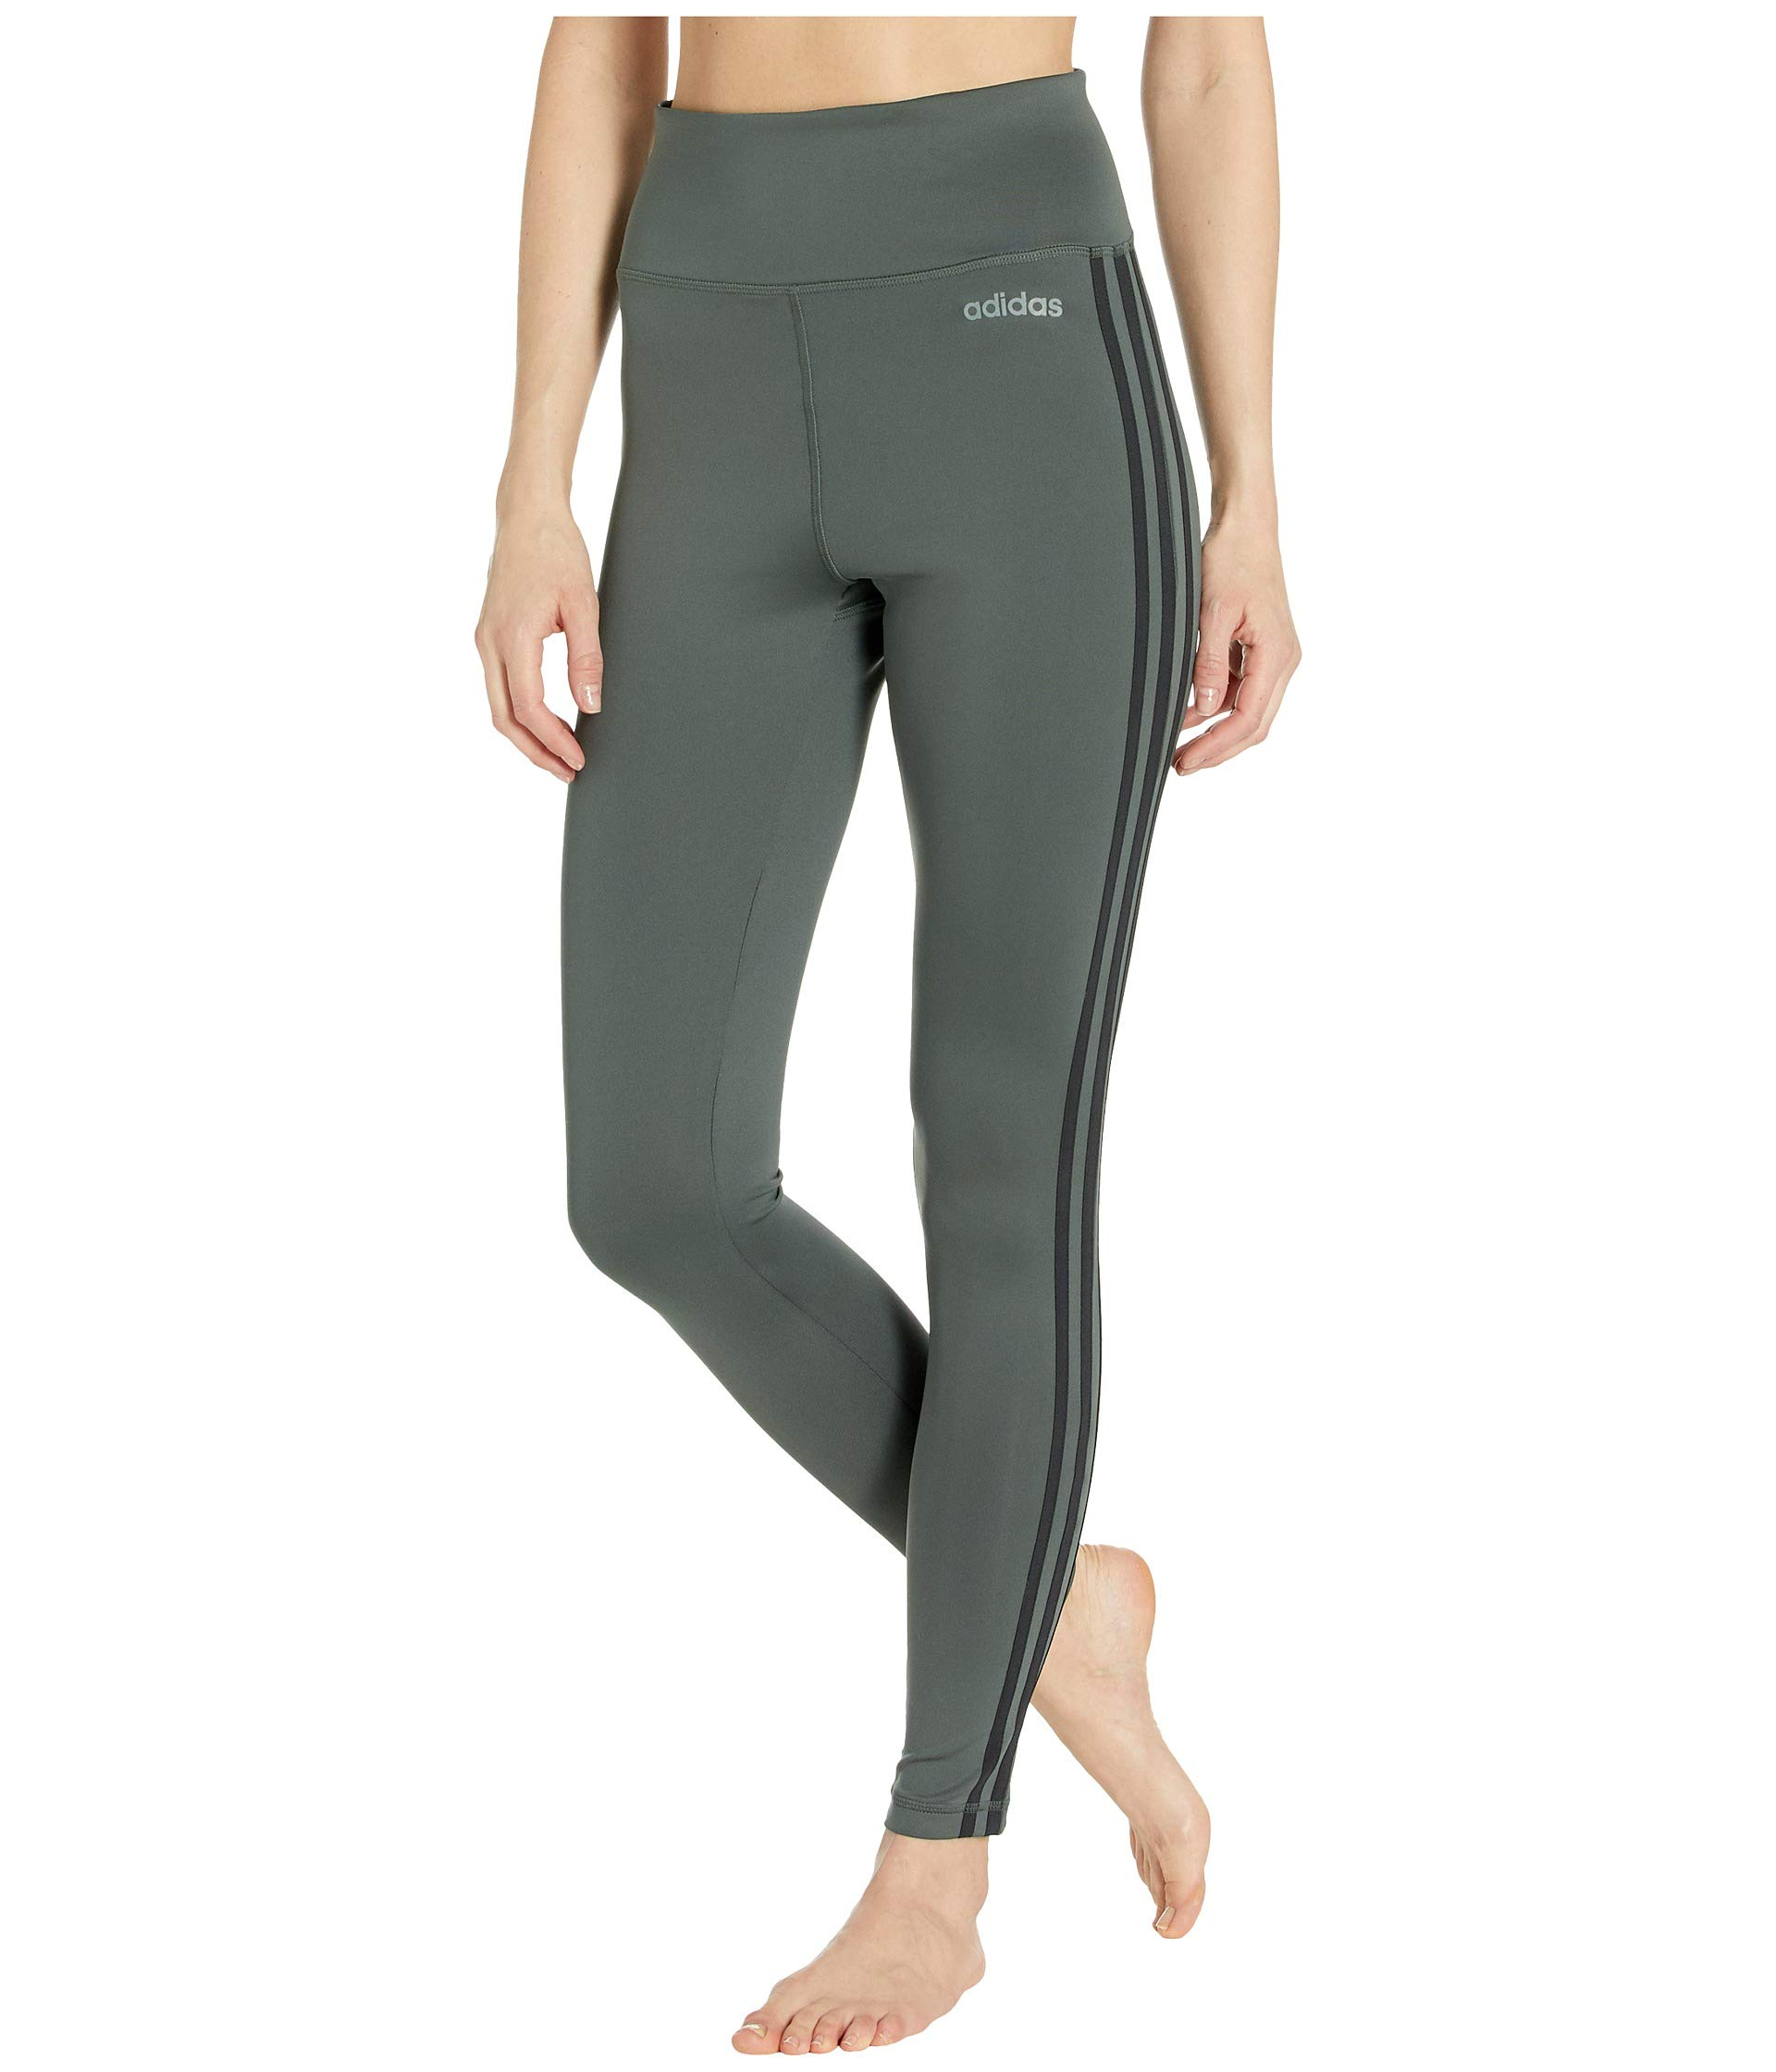 adidas Women's Designed-2-Move High-Rise Long 3-Stripes Tights Legend Ivy Large 29